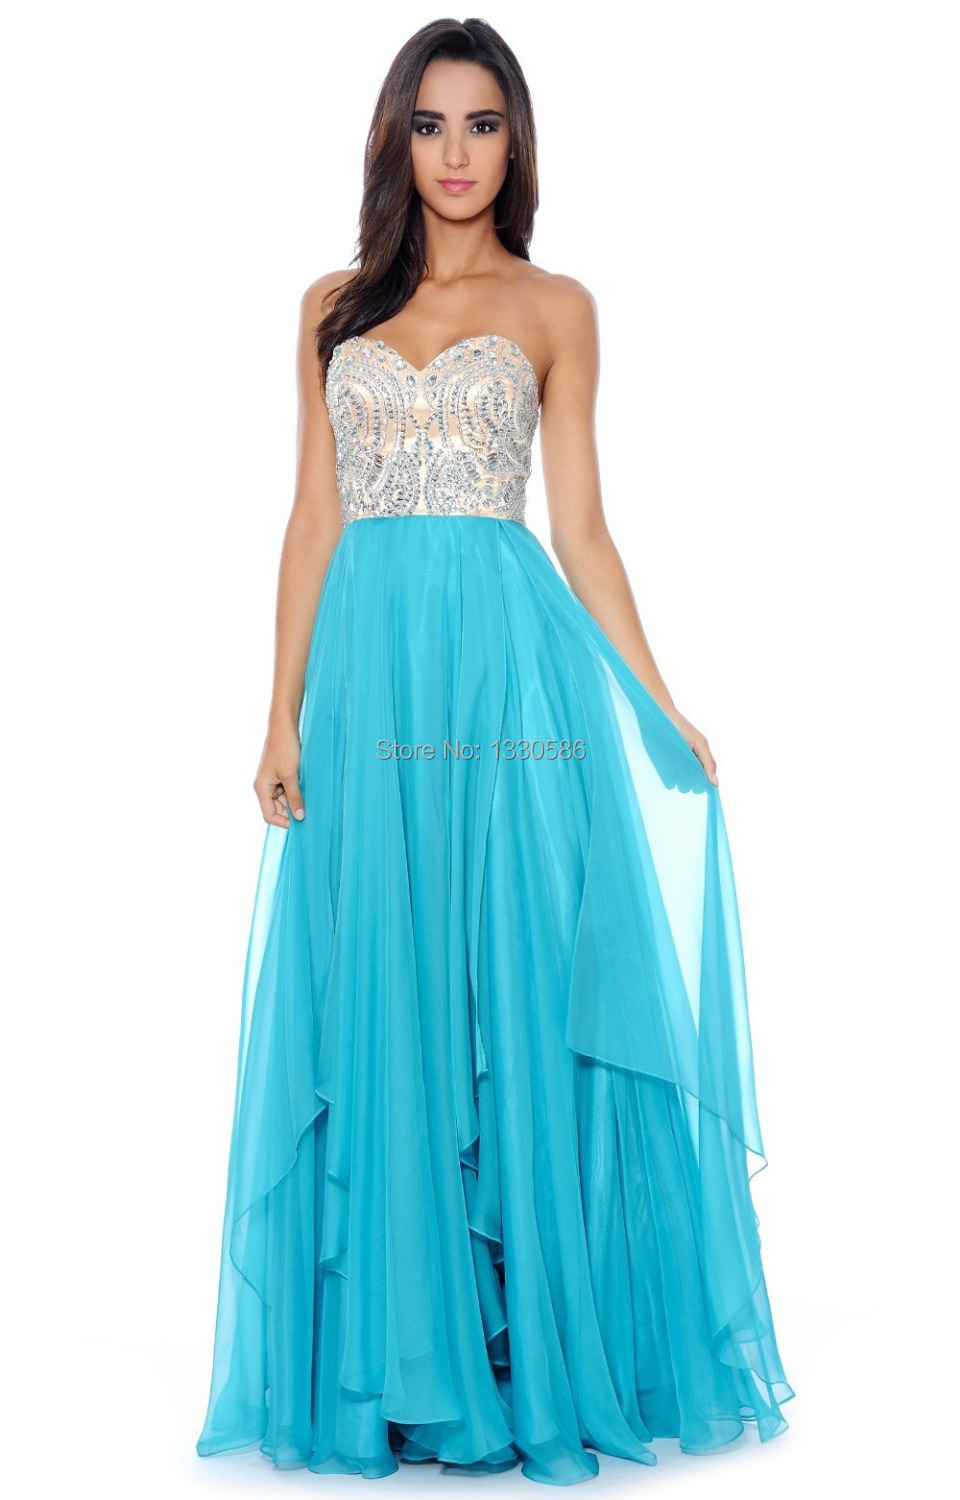 flirt prom dresses prices Guaranteed authentic at incredible prices safe shipping and easy returns maggie sottero hot pink flirt p4556 jeweled long formal dress $13900 $34200.